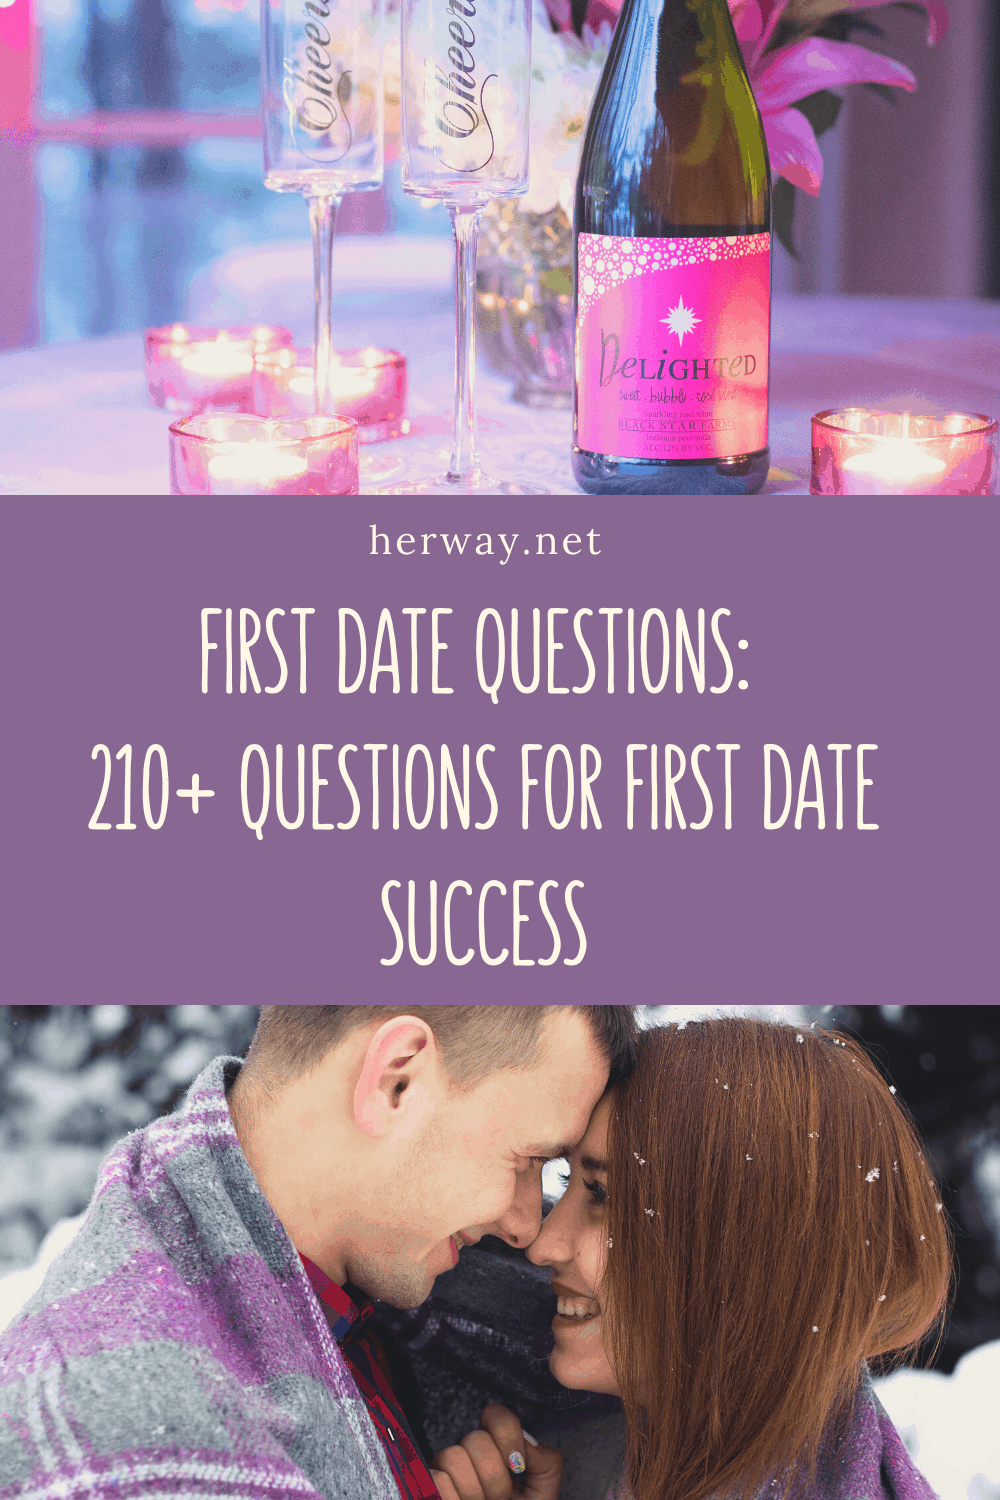 First Date Questions: 210+ Questions For First Date Success